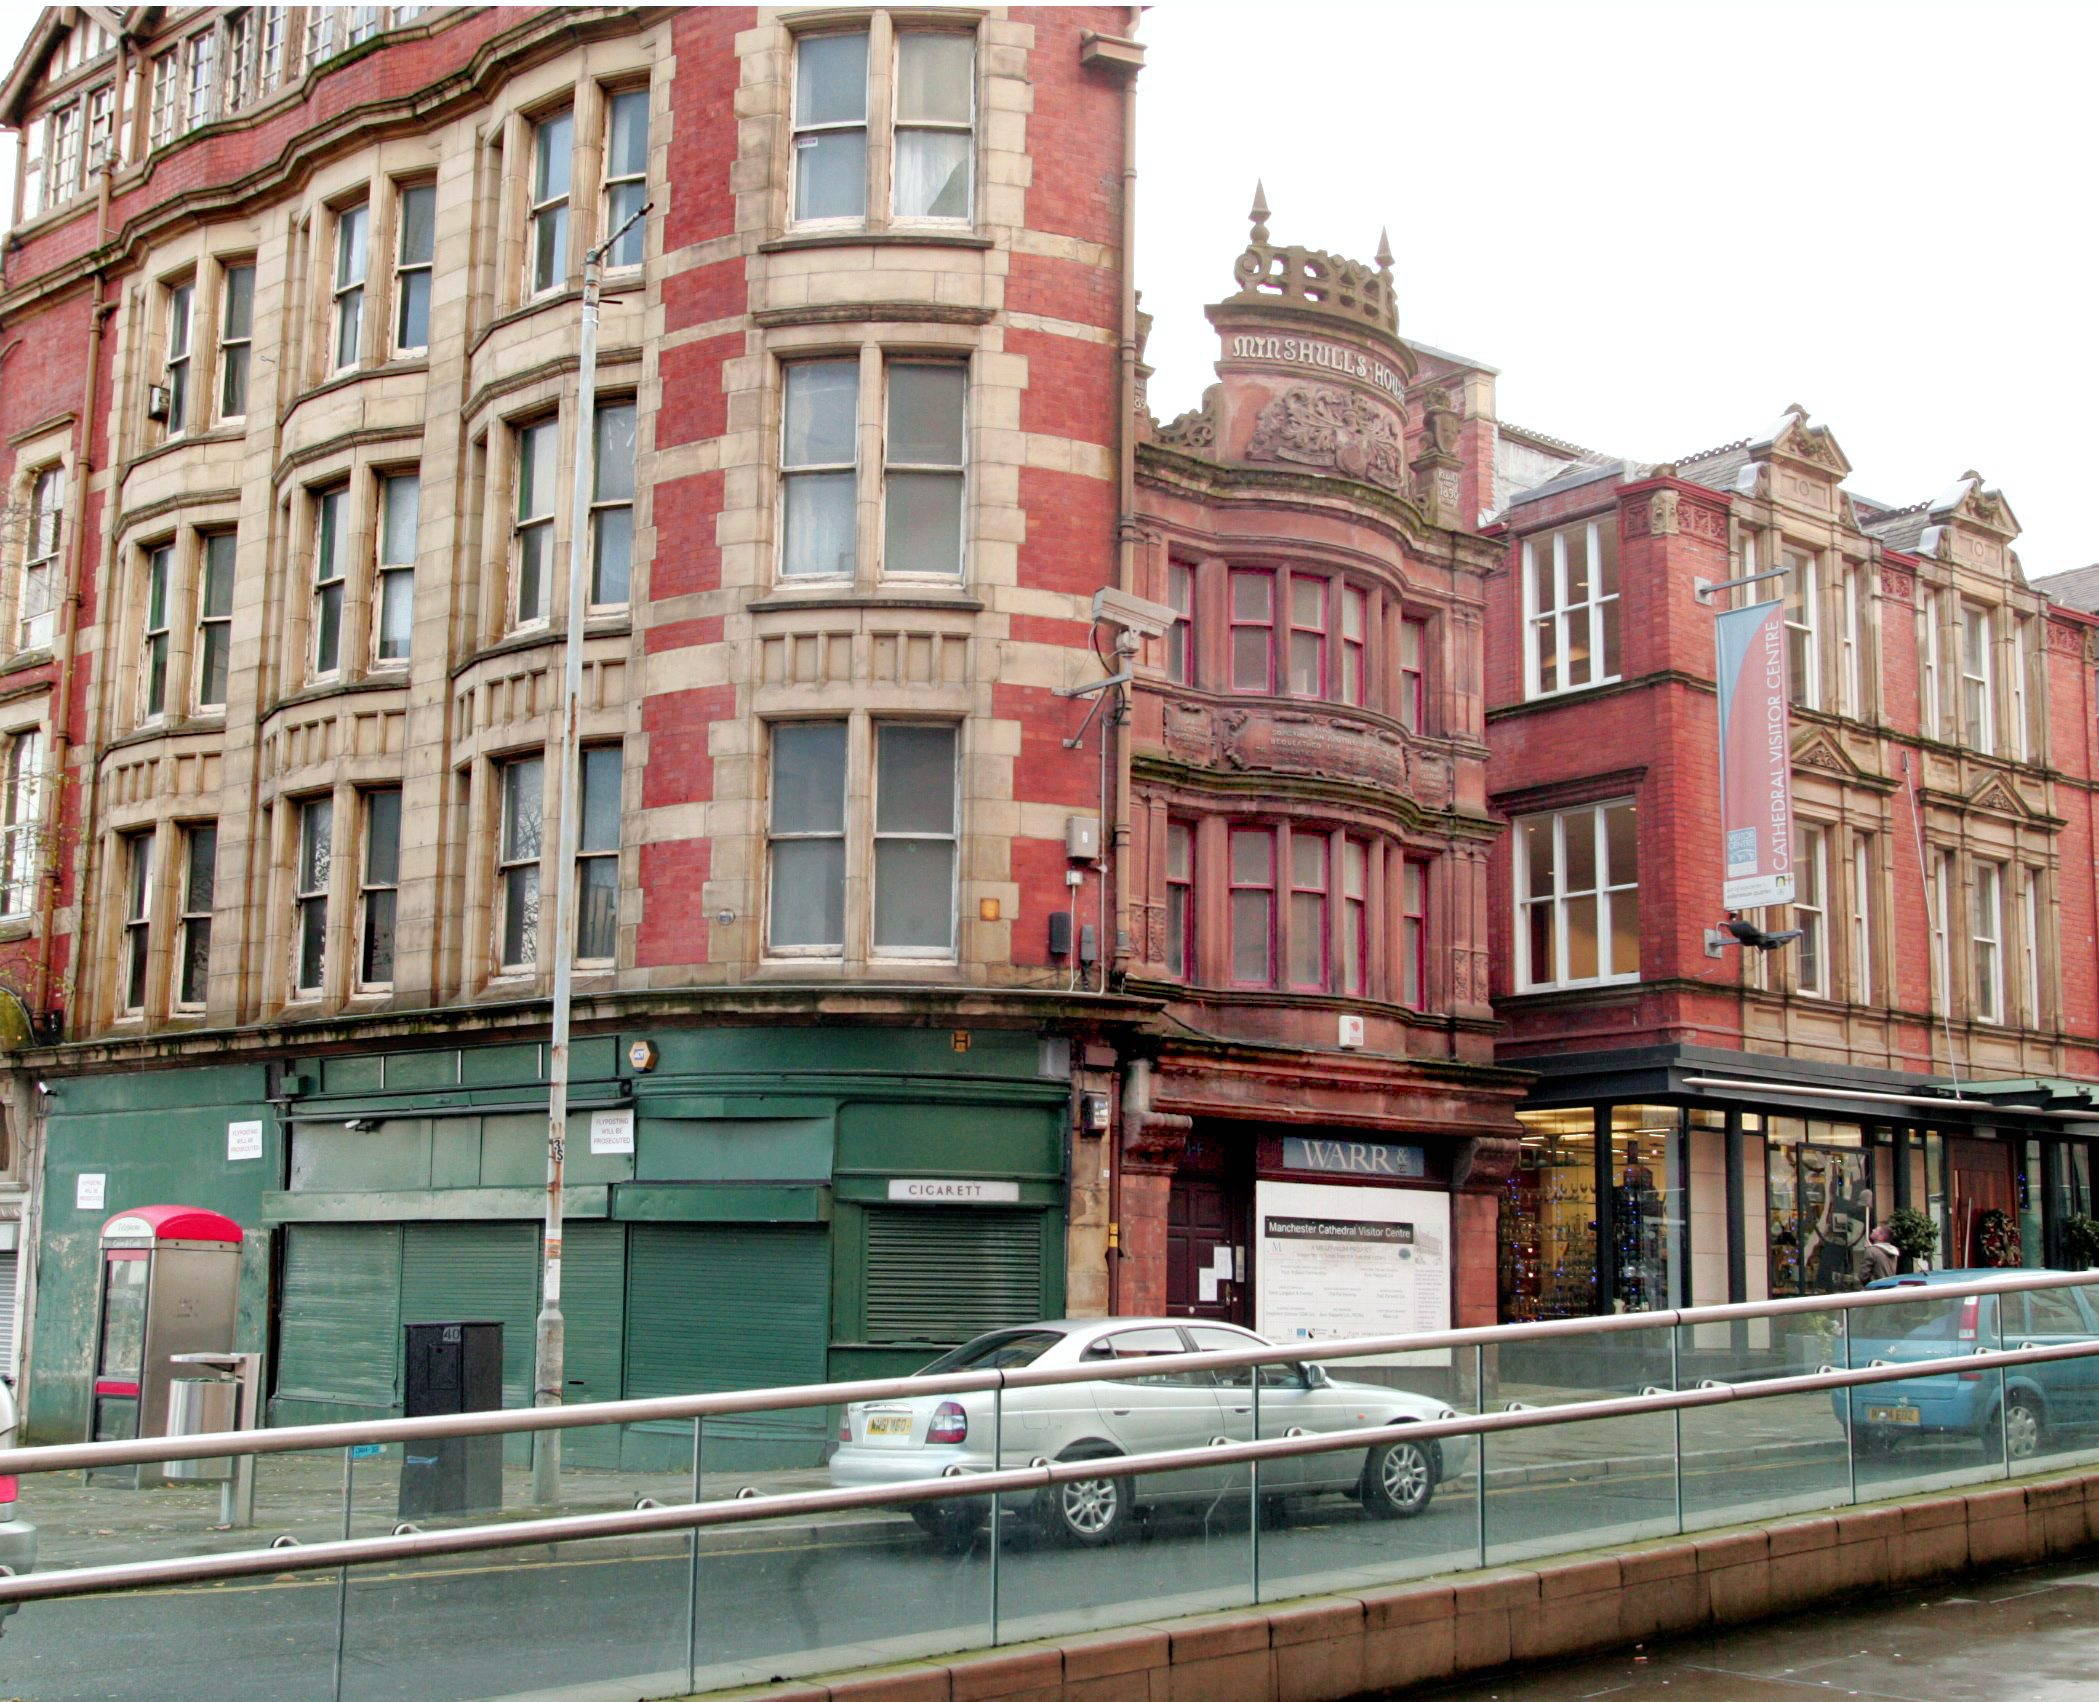 Cateaton Street, Manchester  - Now